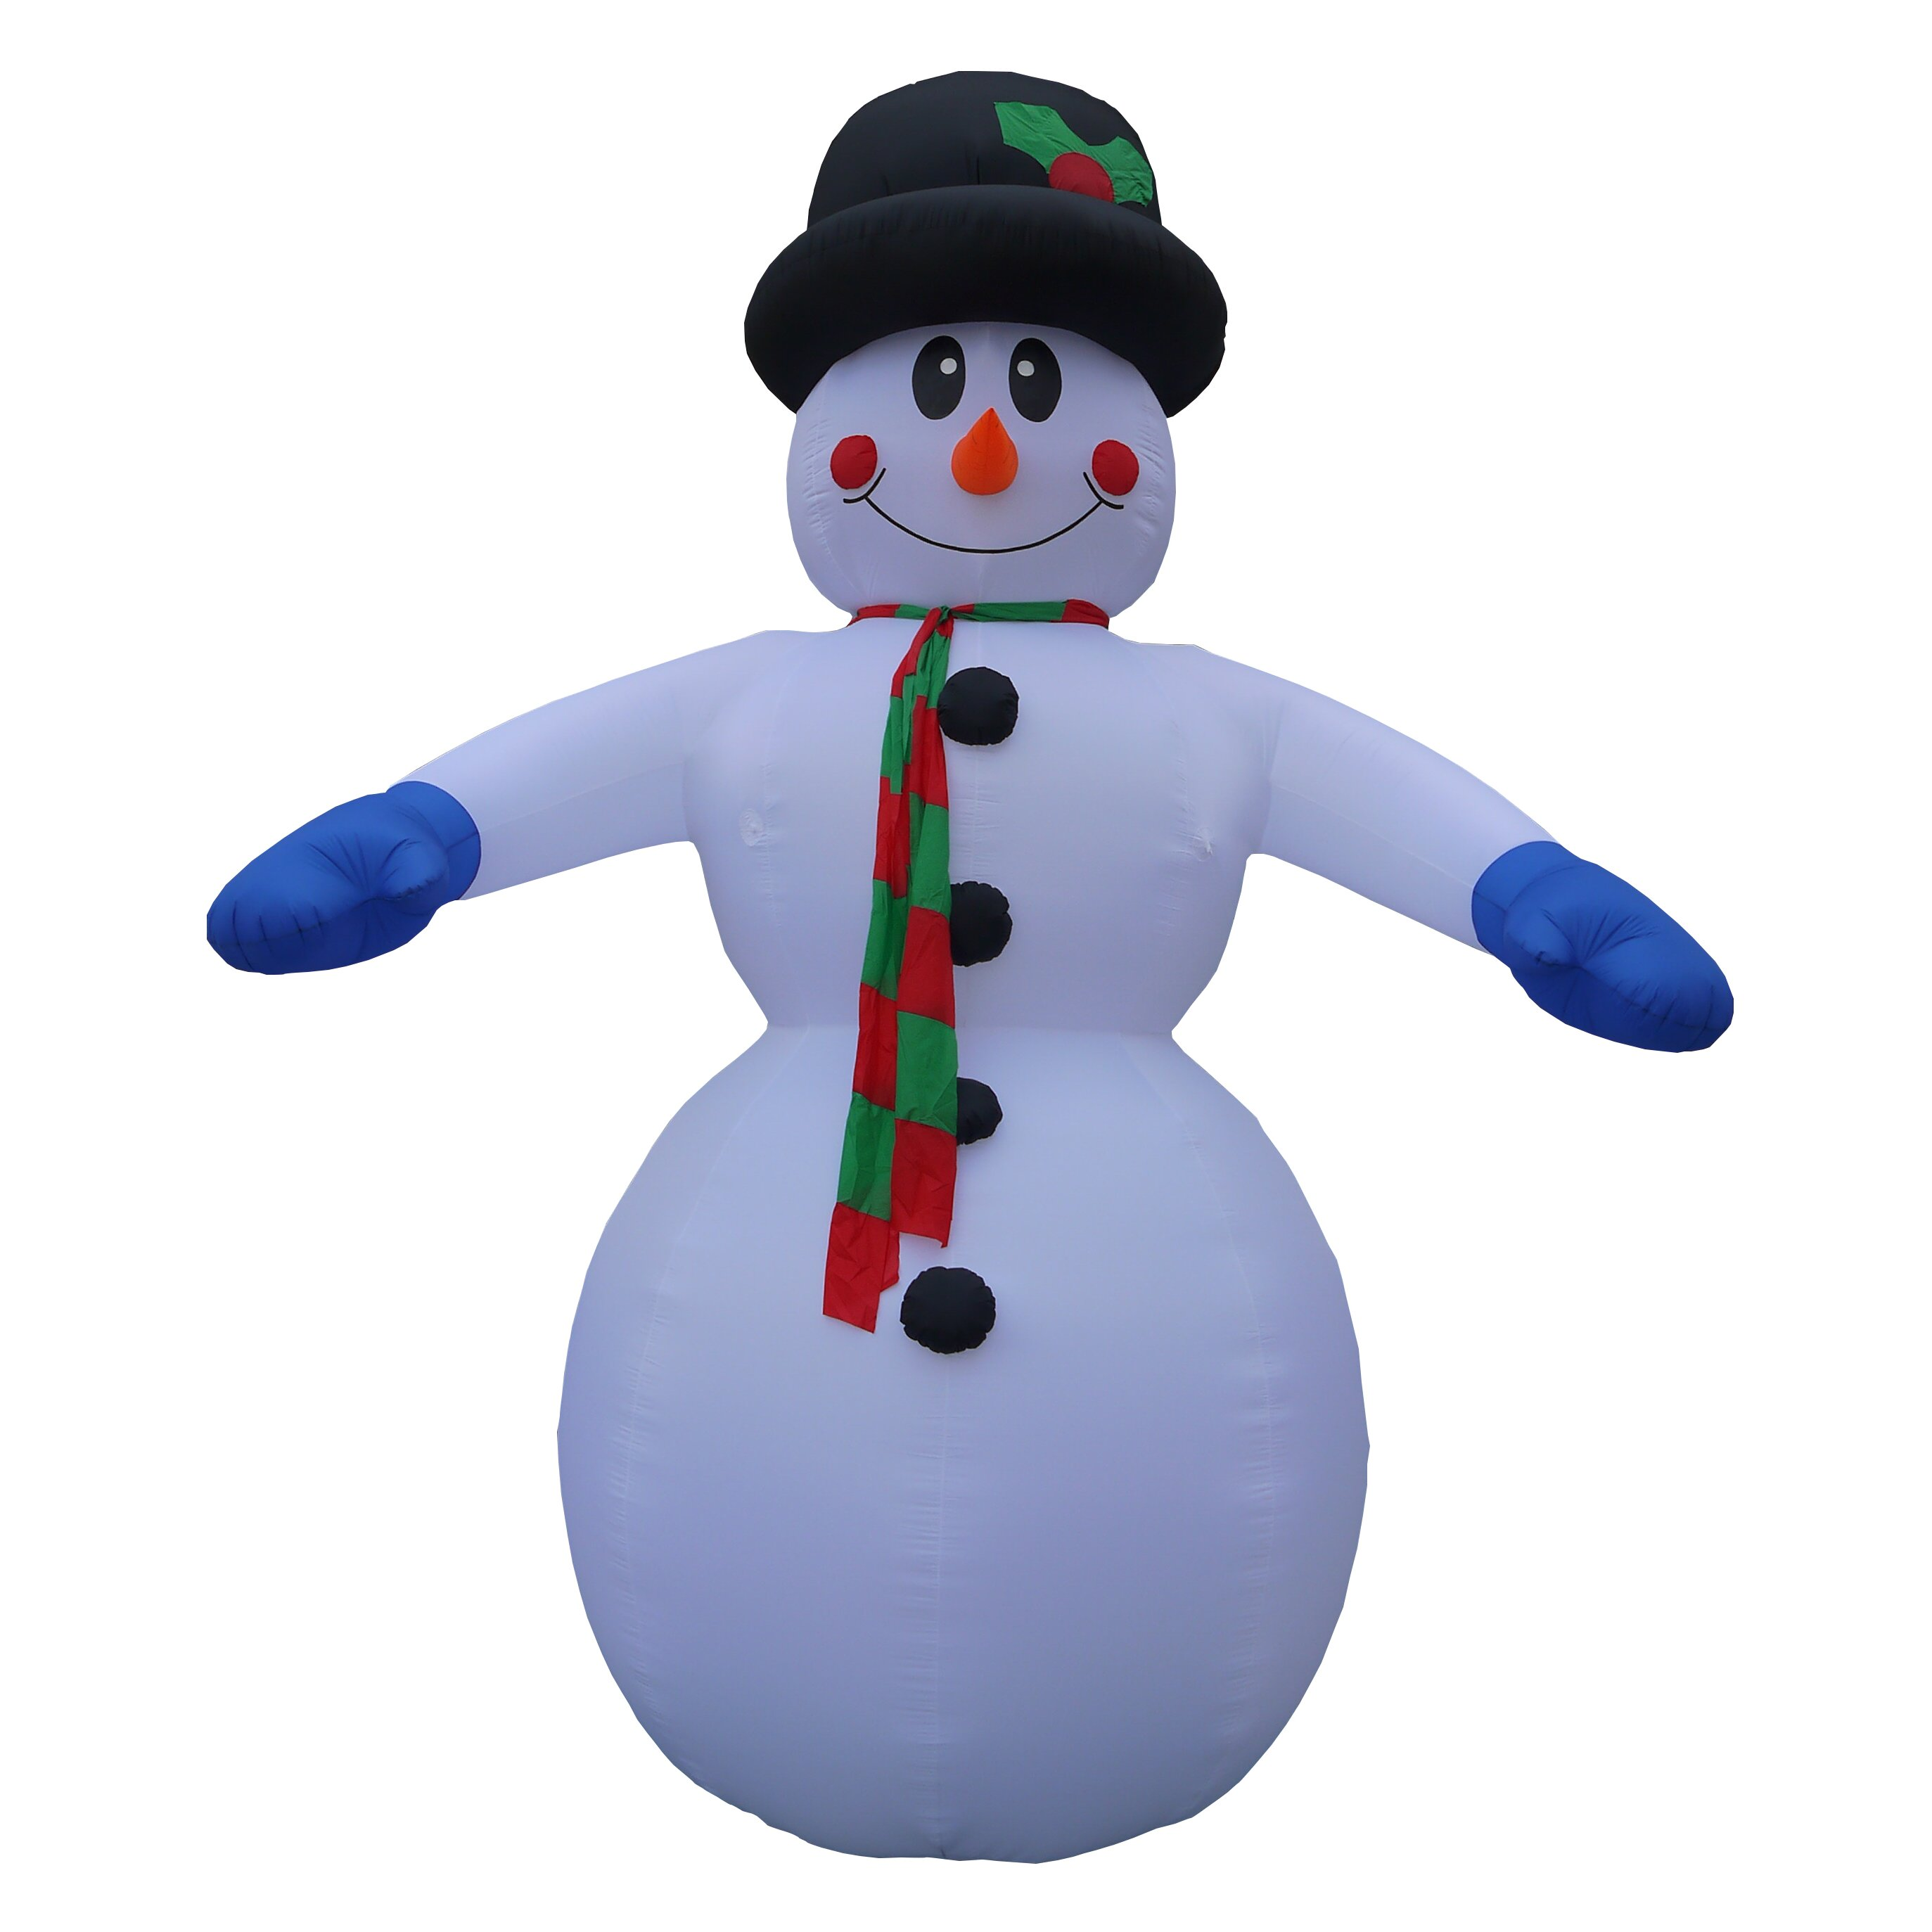 Bzb Goods Christmas Inflatable Huge Snowman Decoration